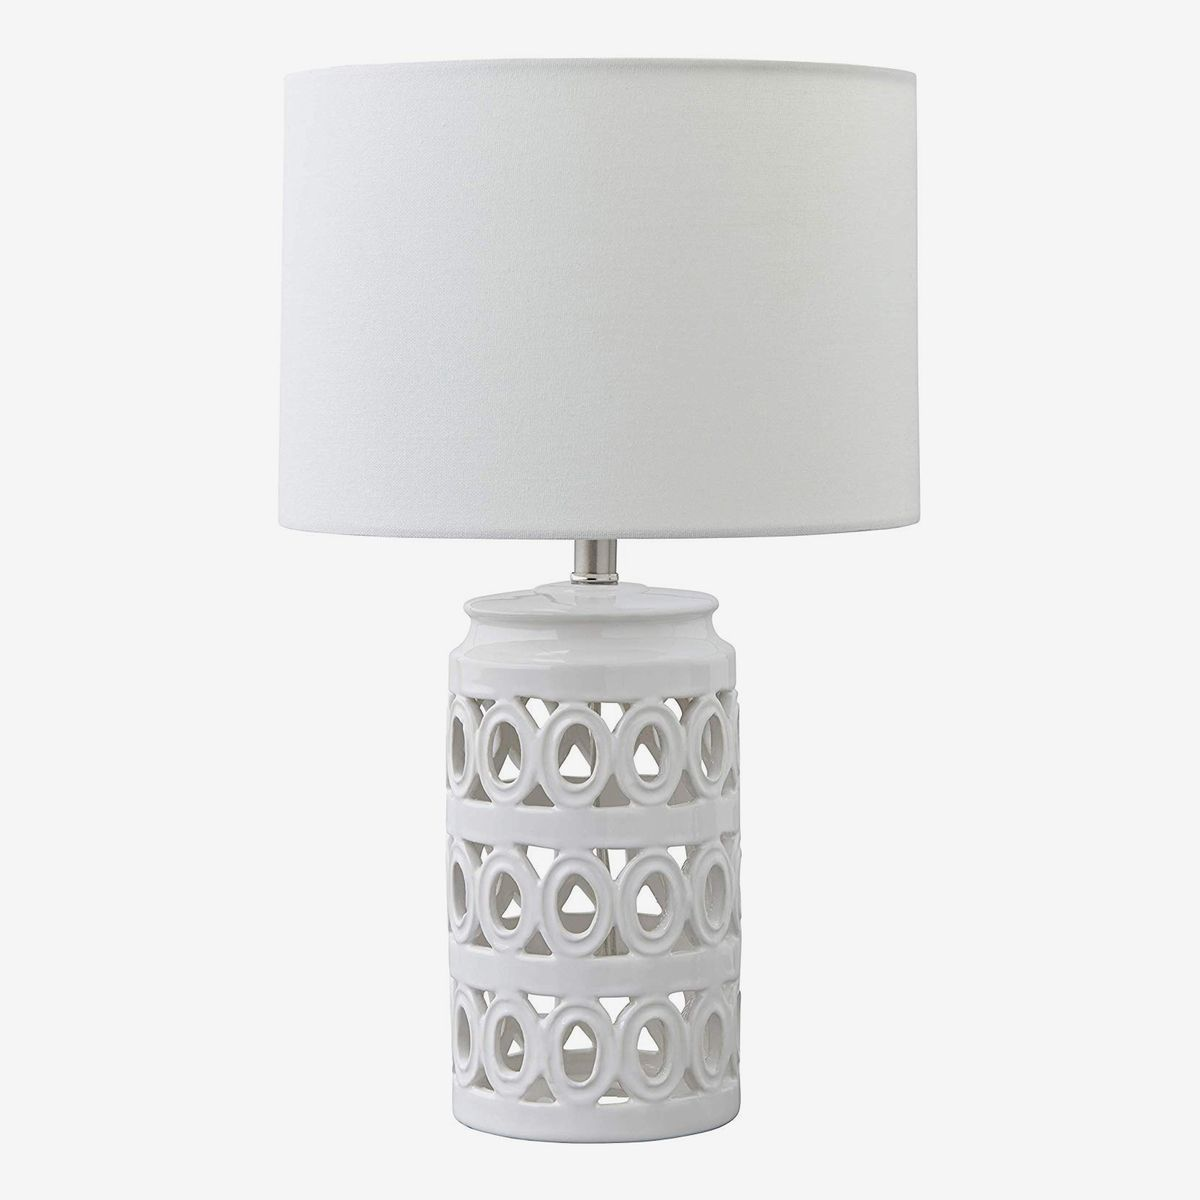 23 Best Bedside Lamps 2020 The Strategist New York Magazine